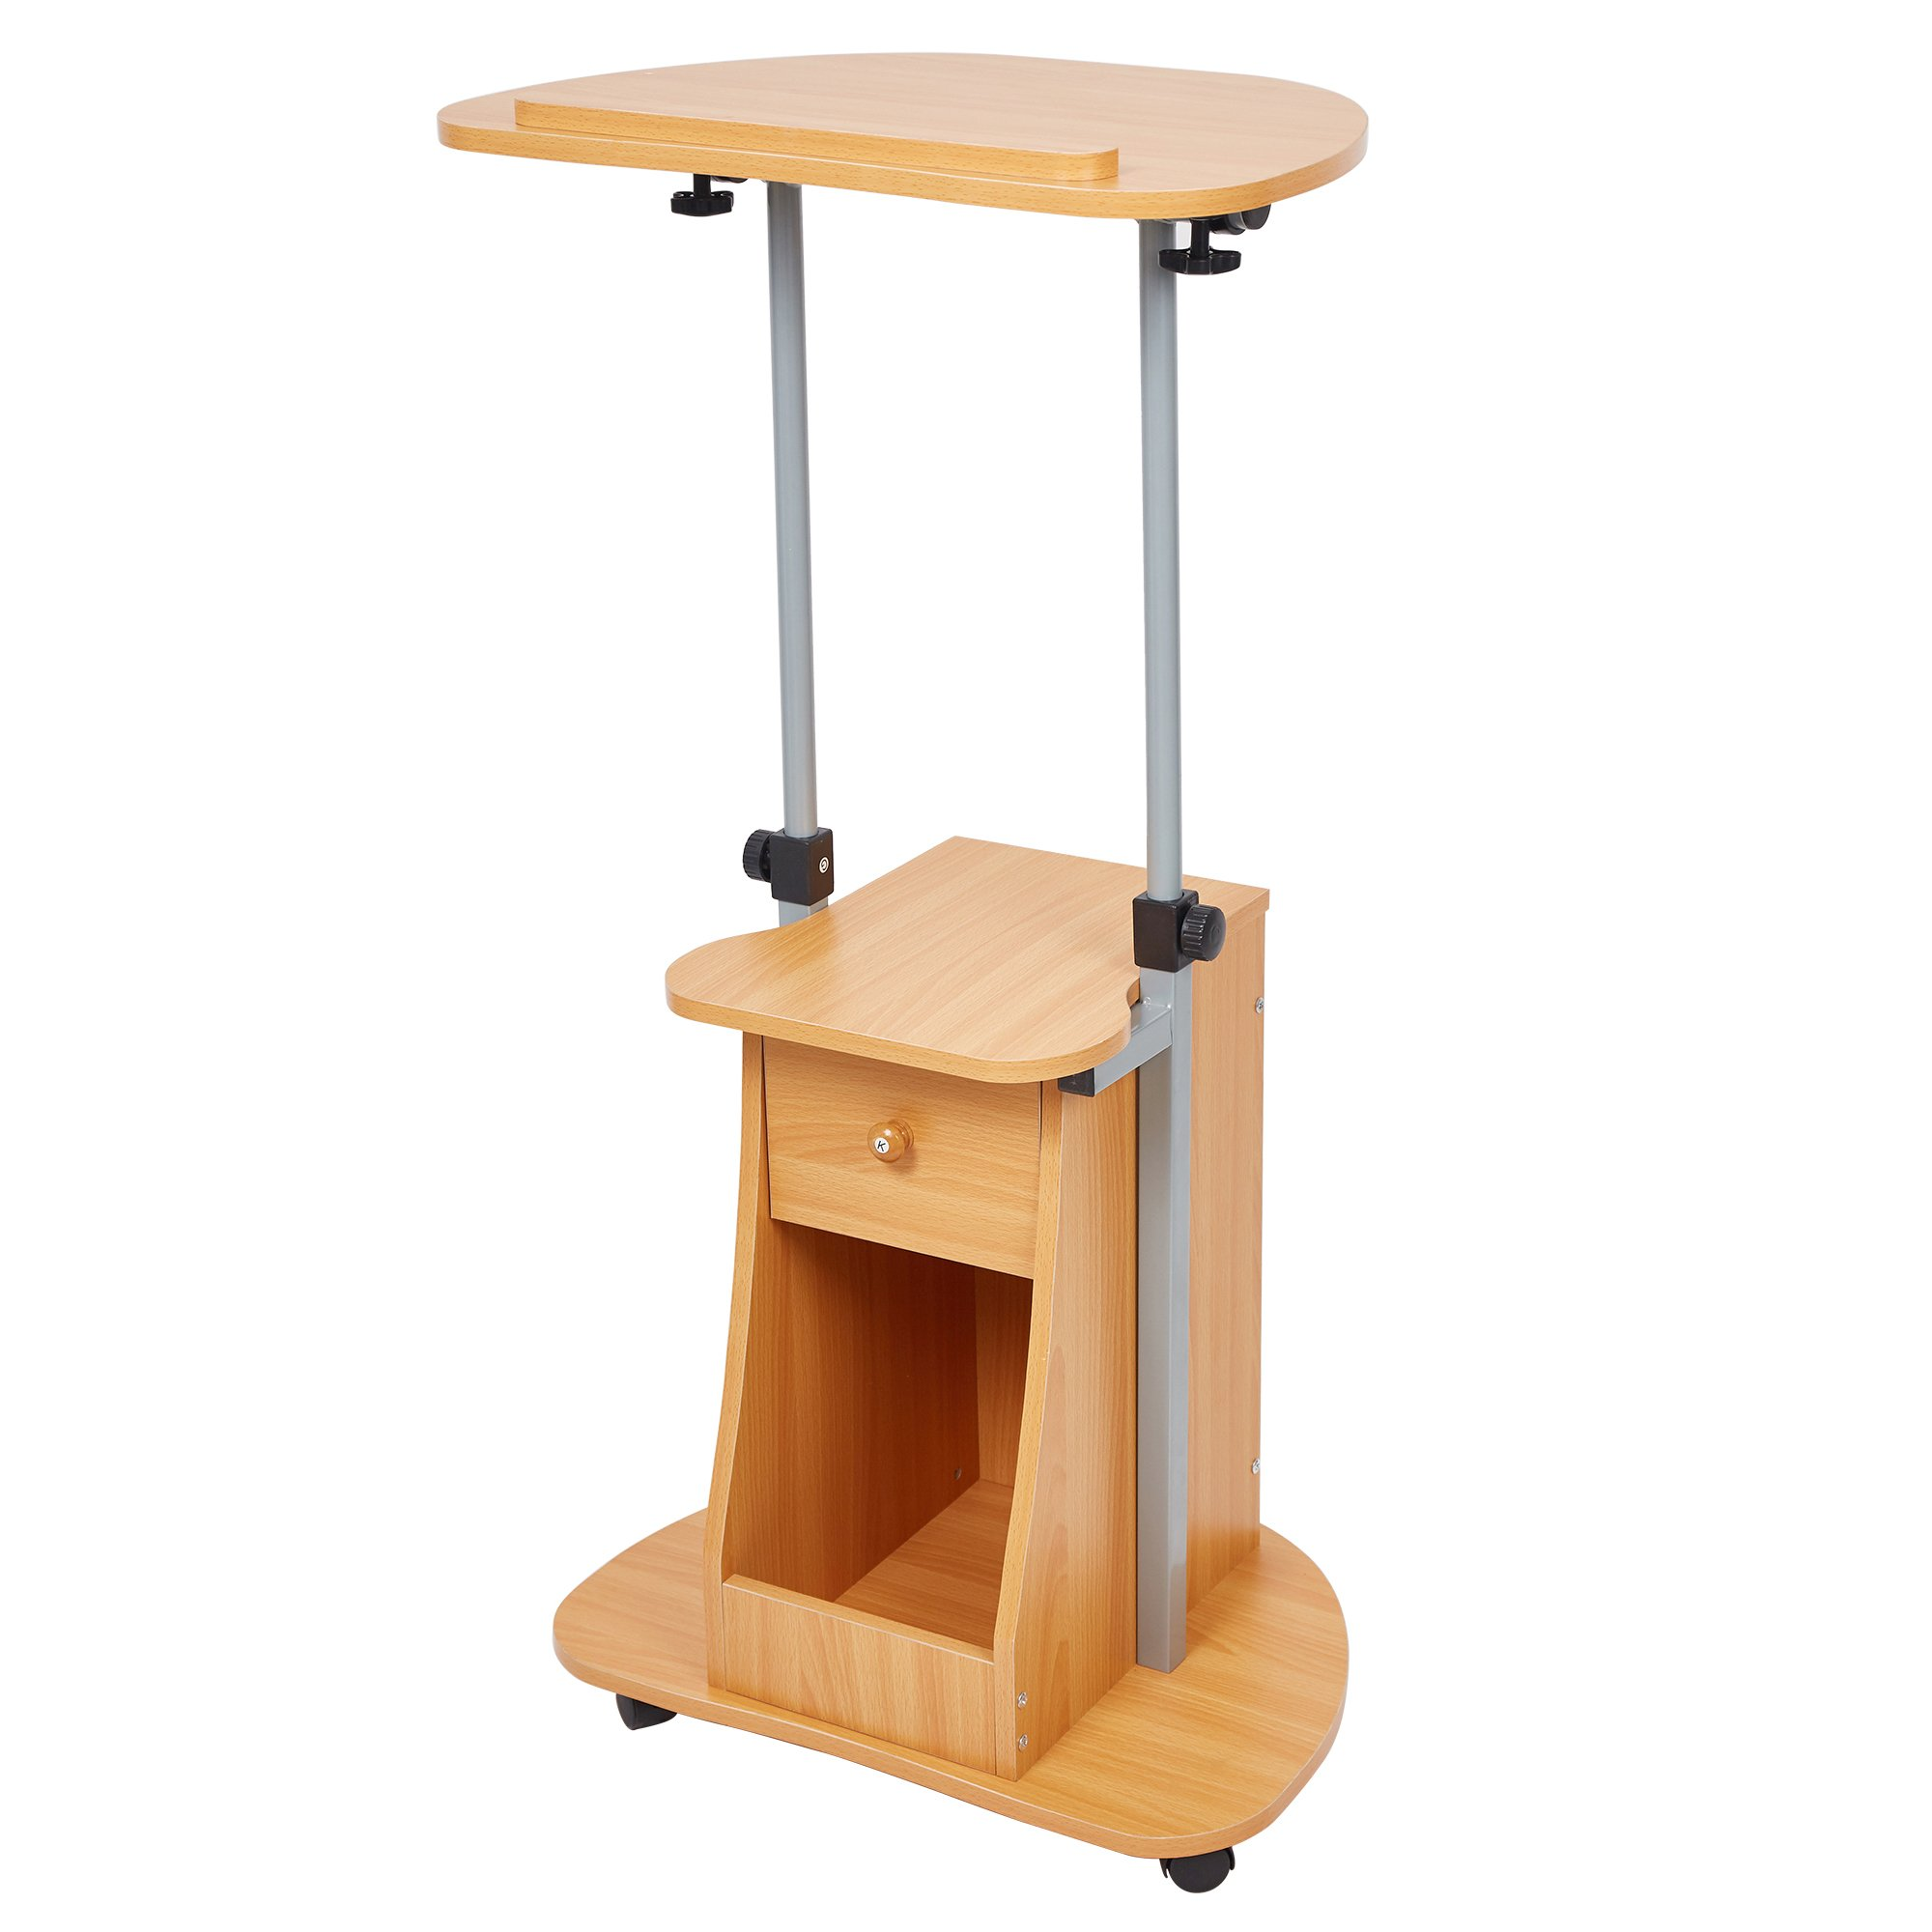 Lucky Tree Sit-to-Stand Laptop Desk with wheels Height Adjustable Laptop Stand with Storage Cart Mobile Notebook Workstation with Tilt Top for Lectern Podium